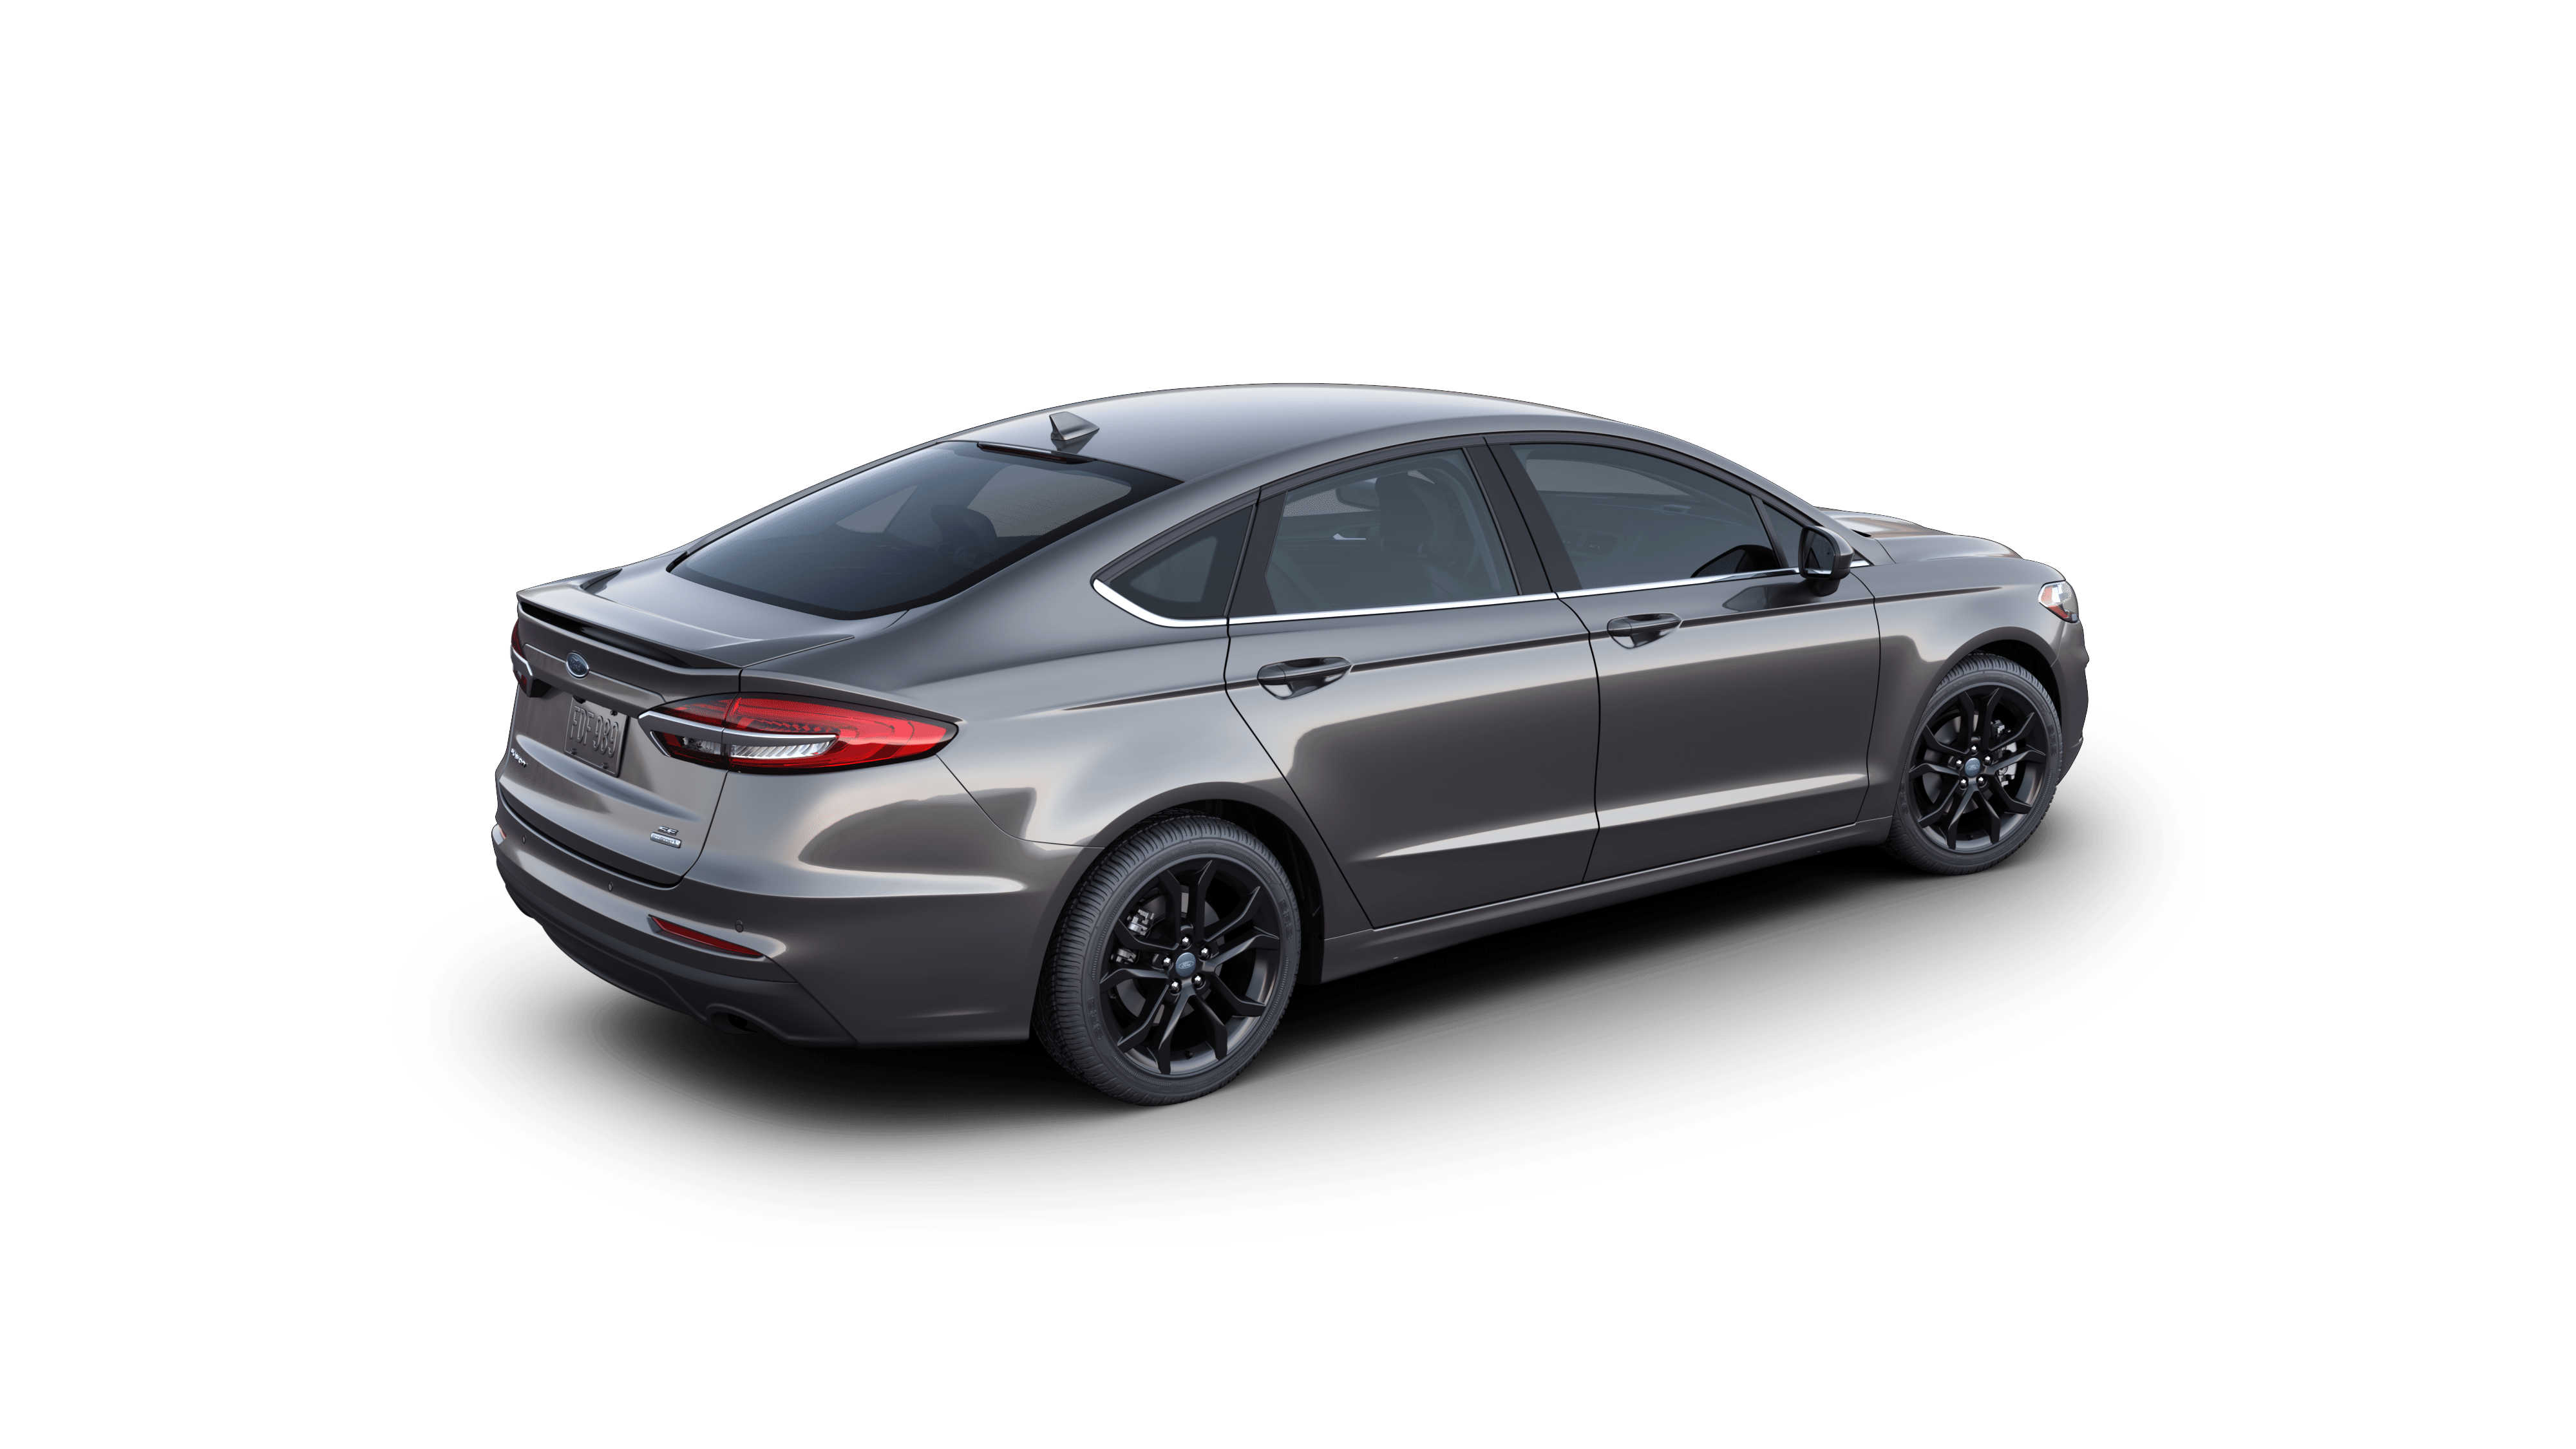 2019 Ford Fusion for sale in Blytheville - 3FA6P0HD0KR161387